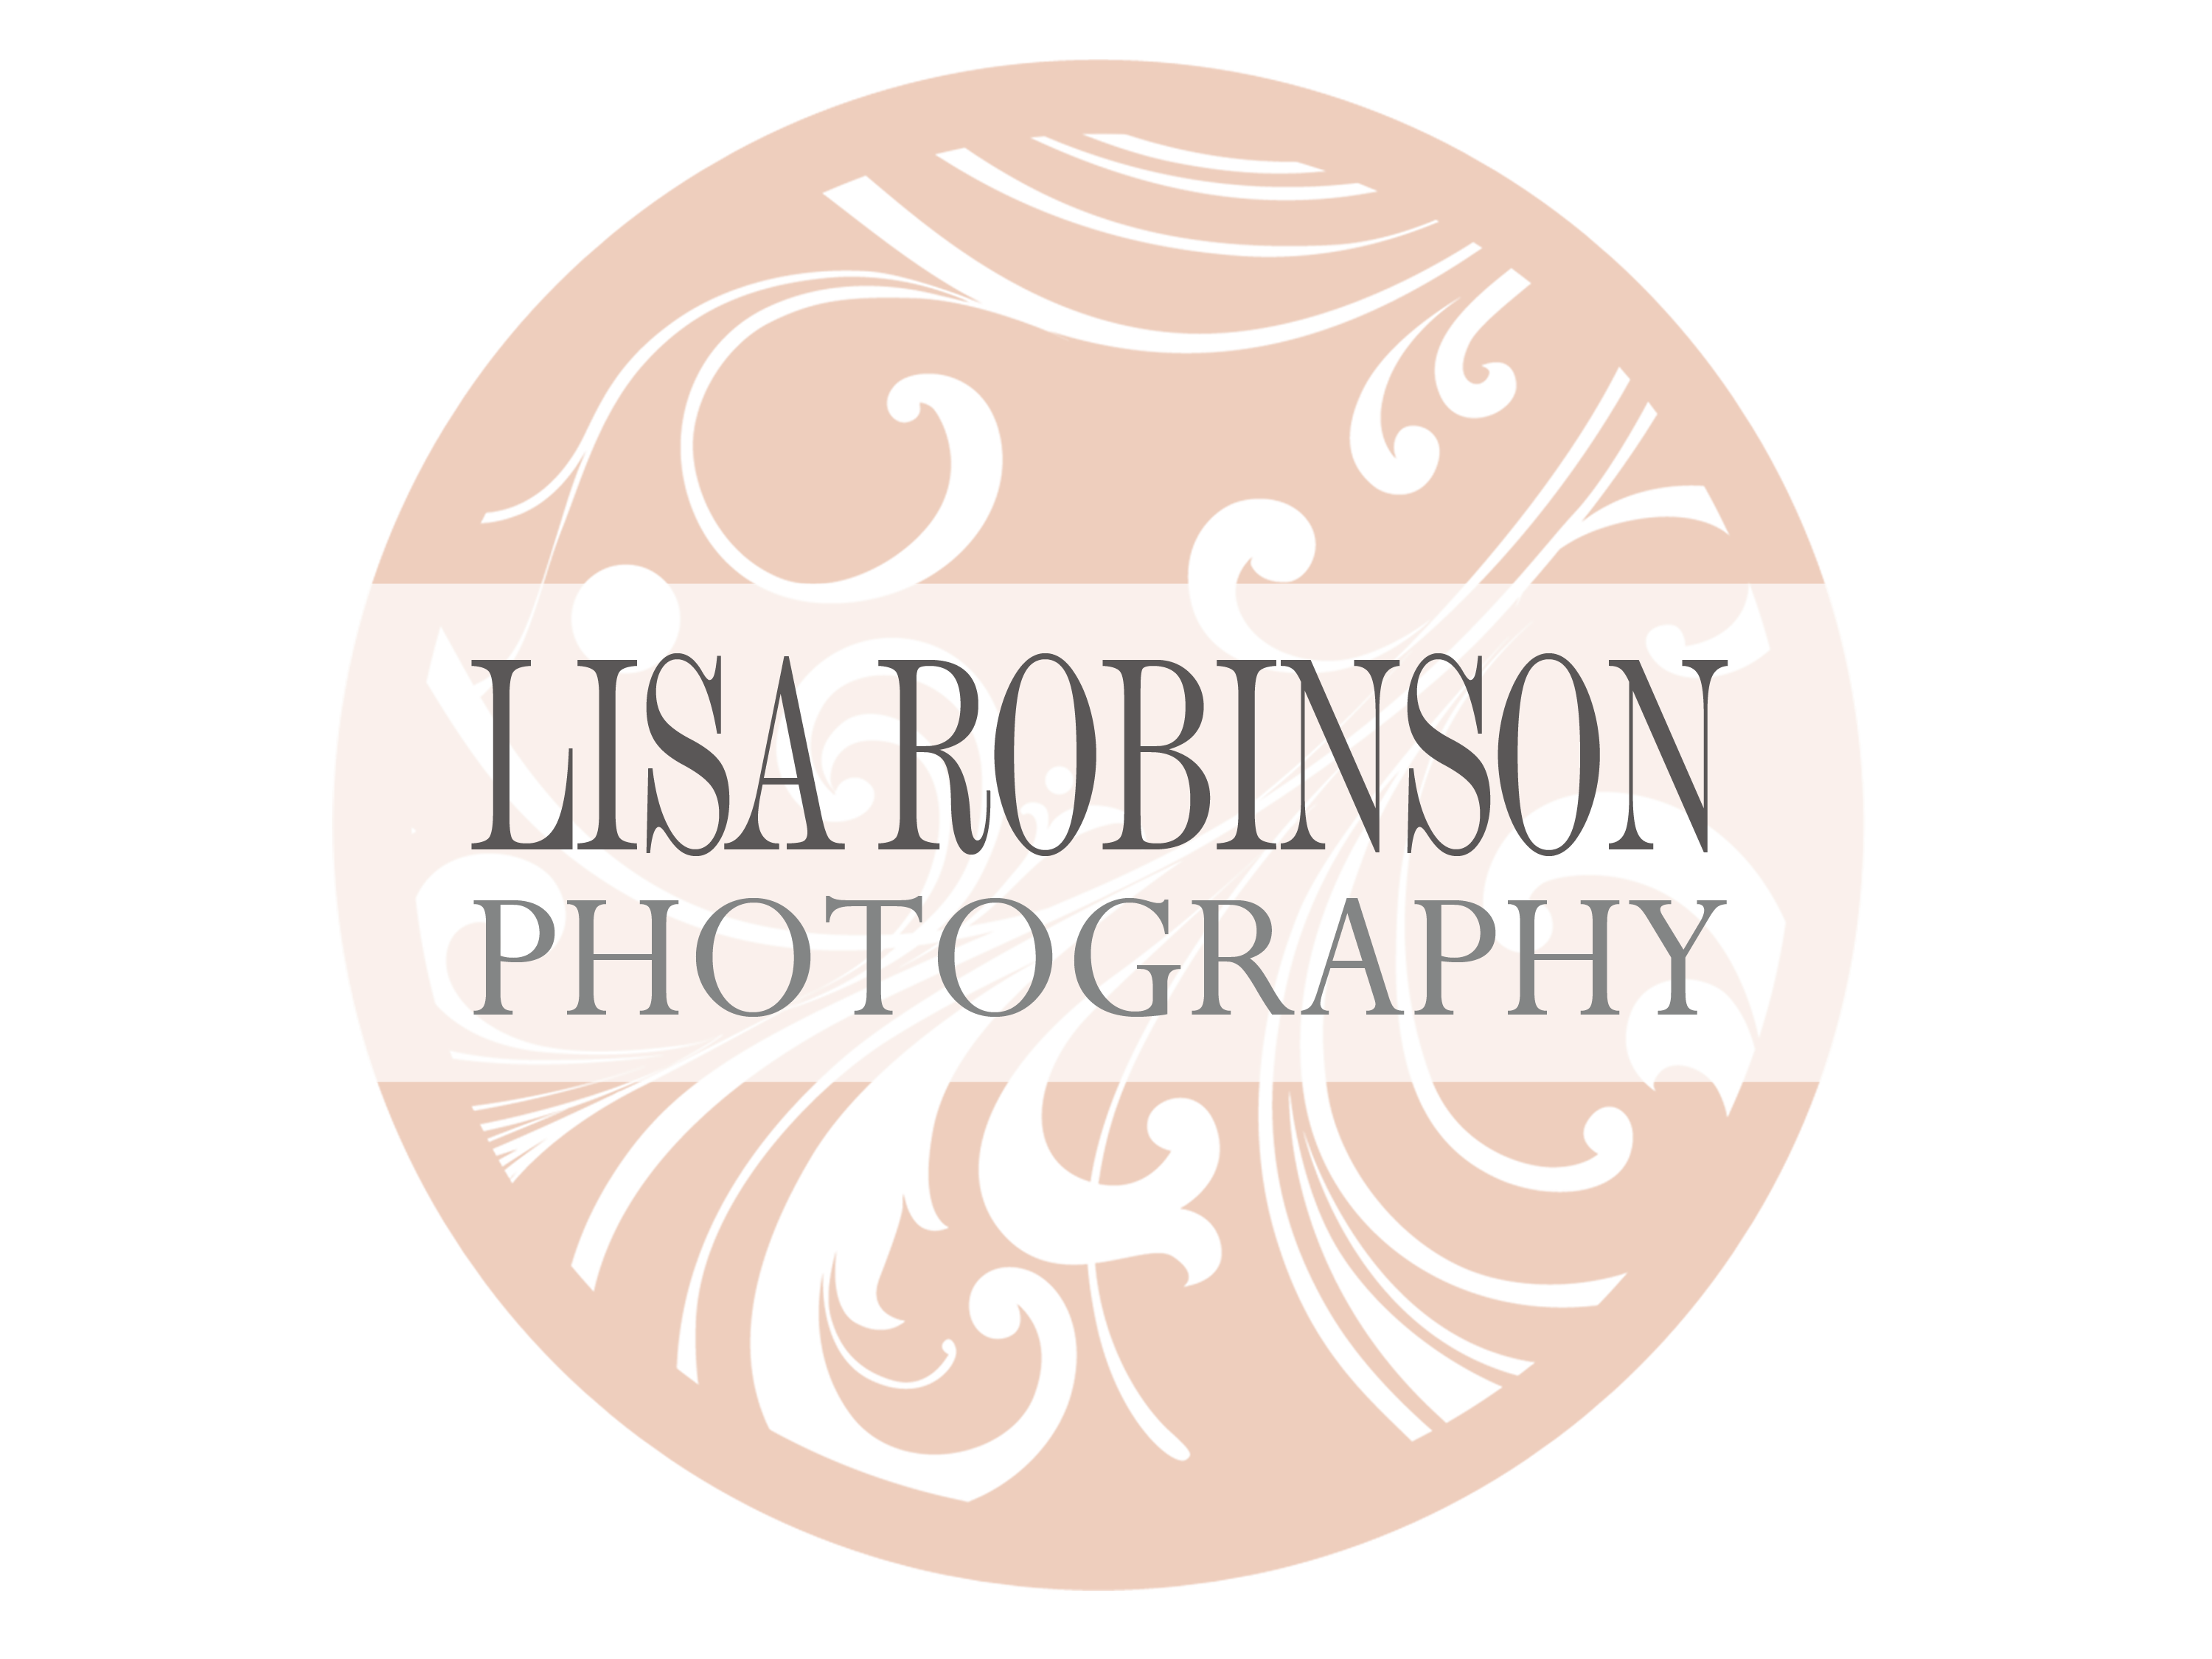 Lisa Robinson Photography